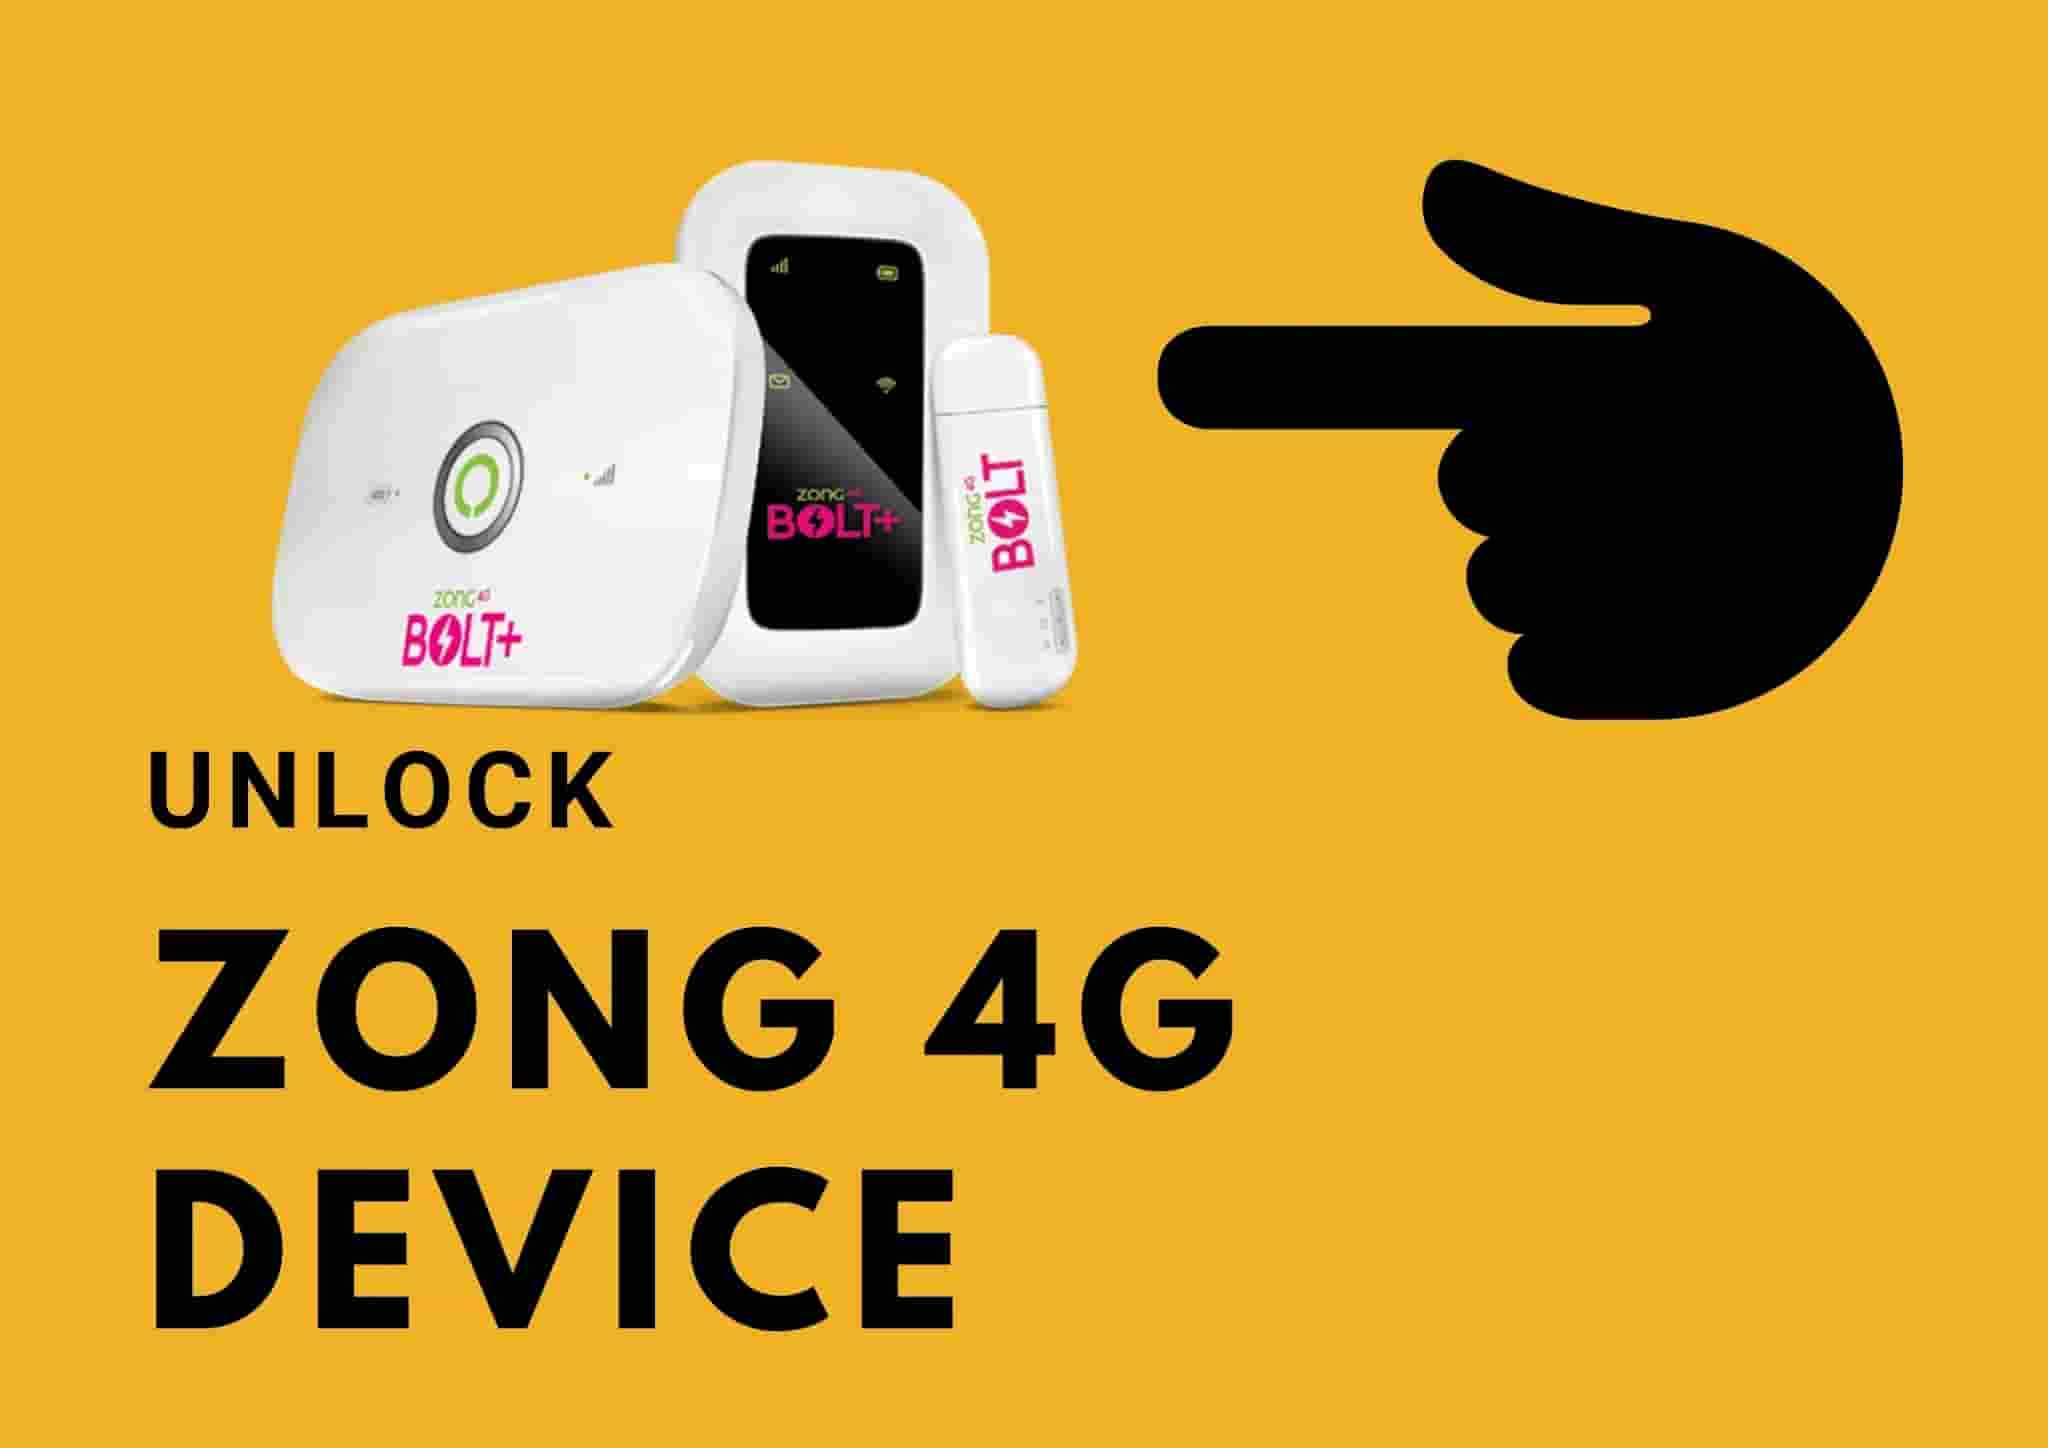 Zong 4g Device Unlock Software Free Download